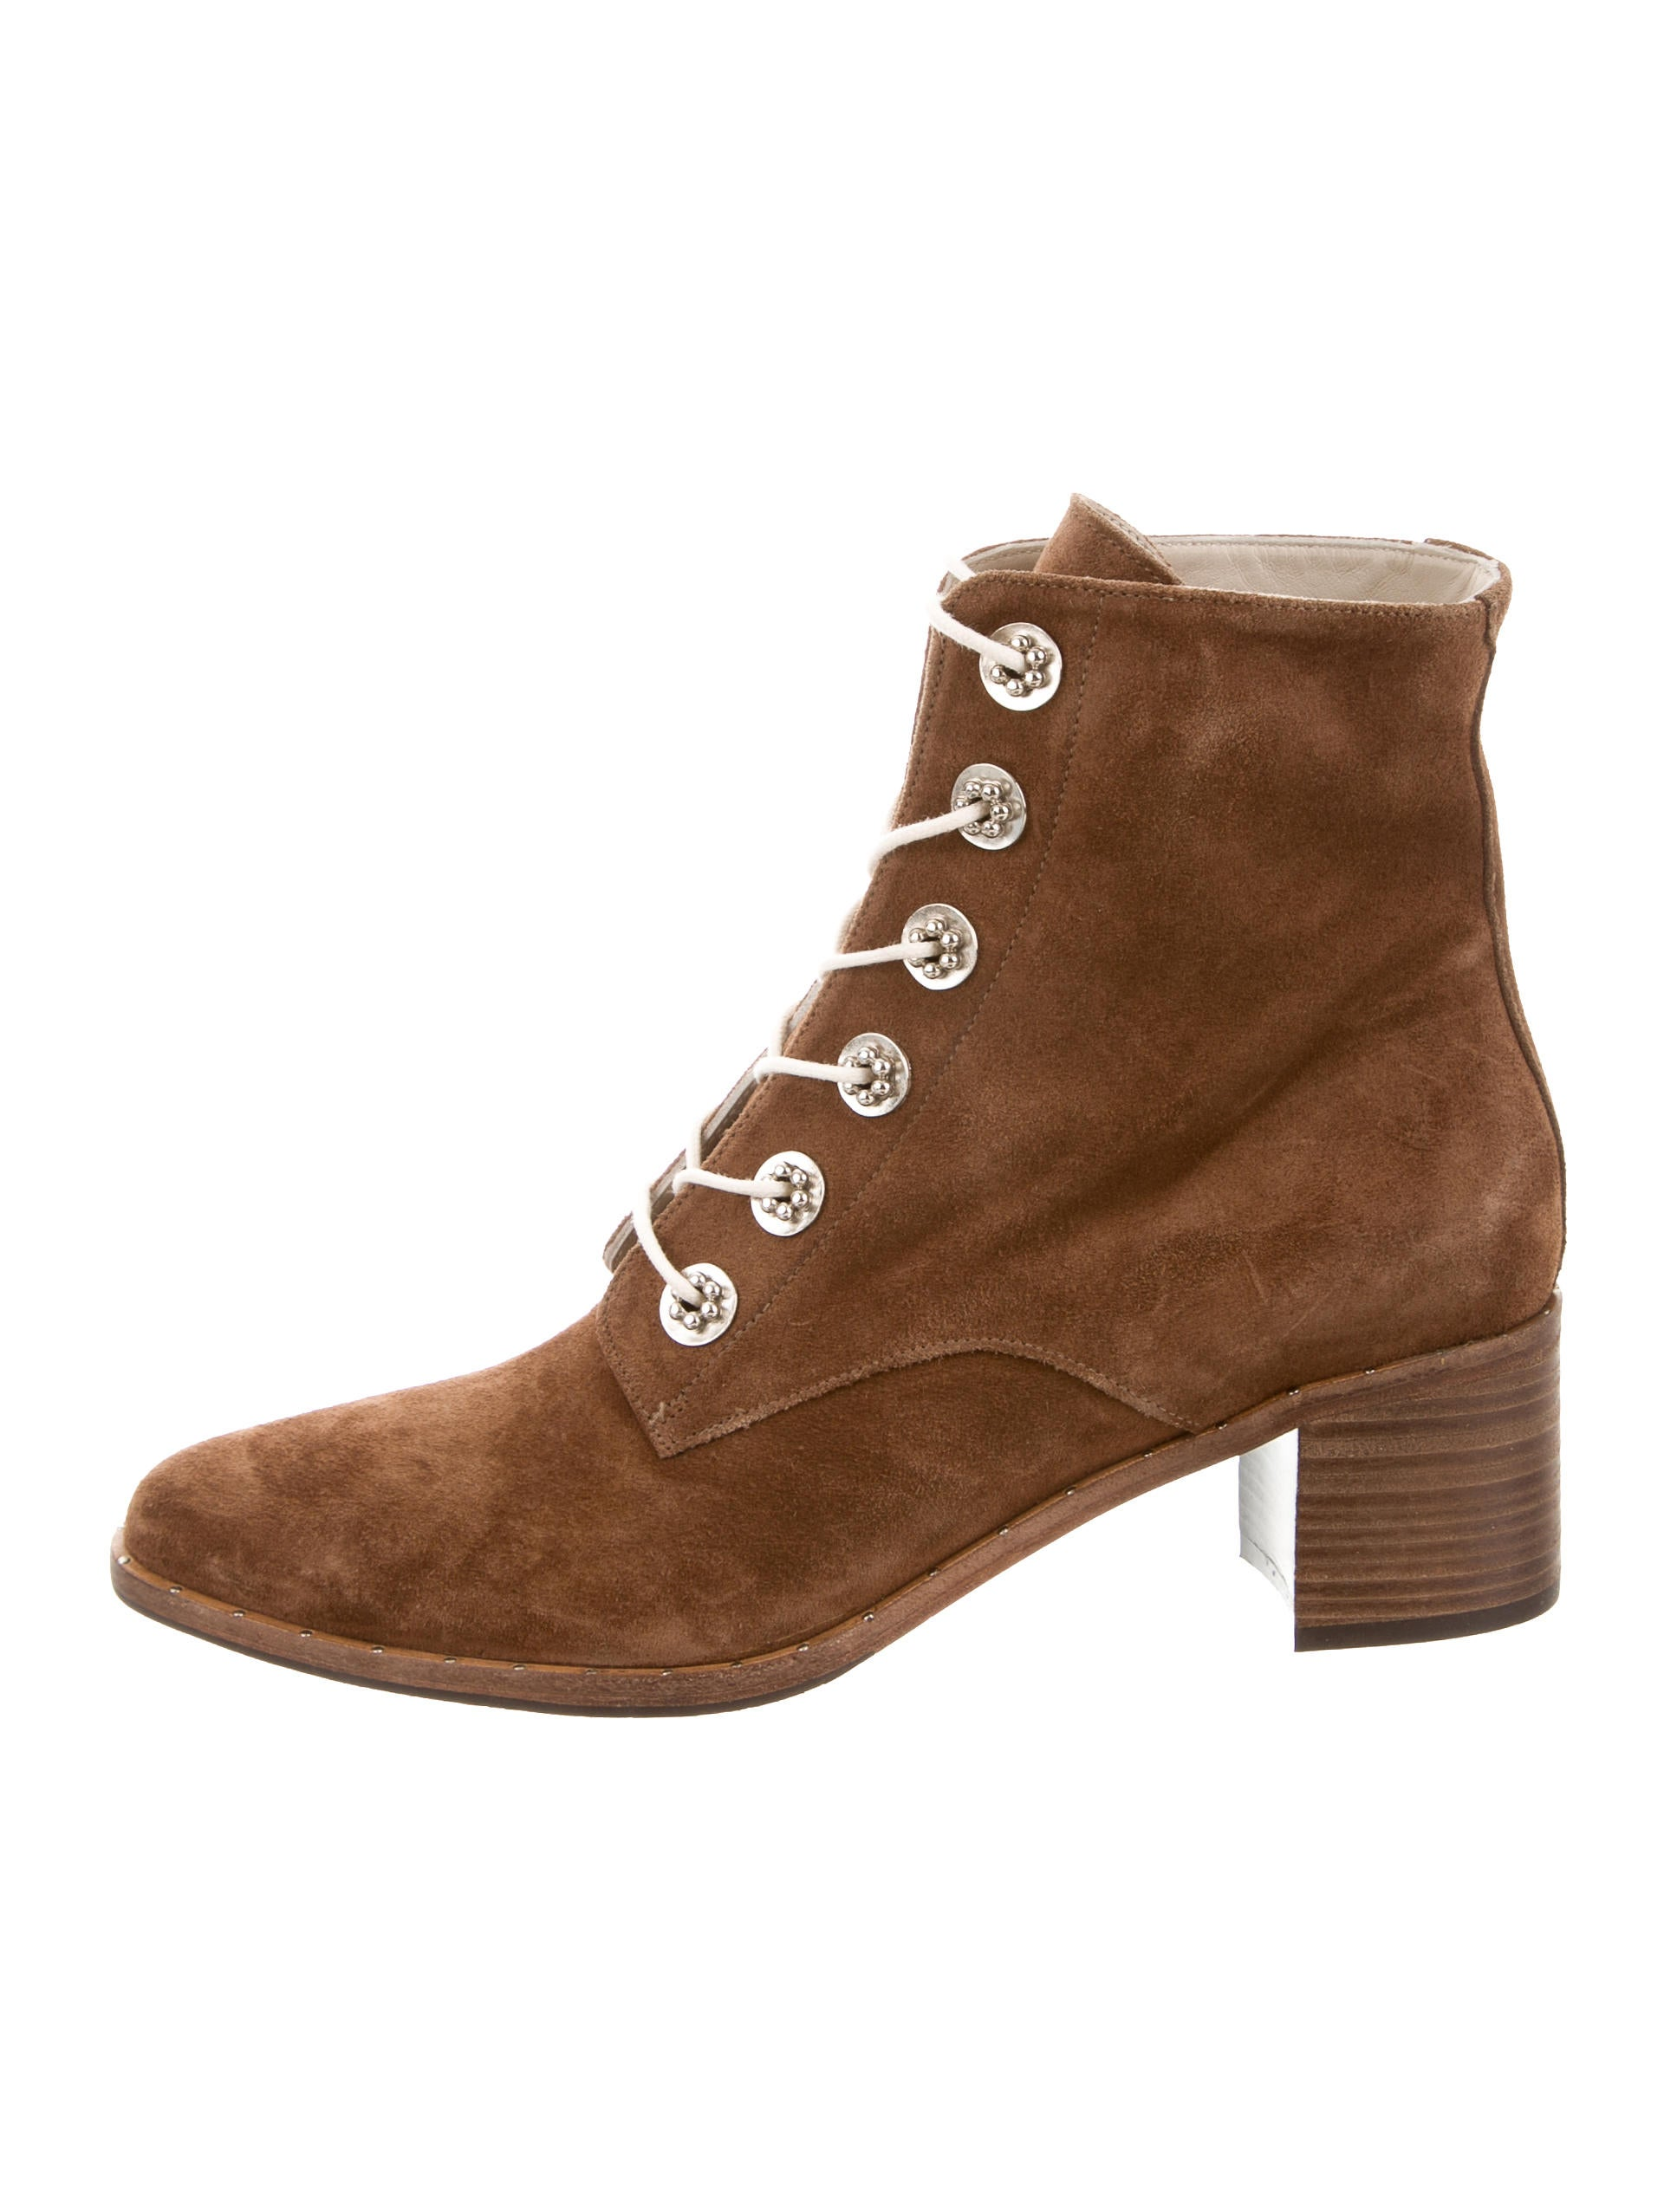 Freda Salvador Suede Lace-Up Ankle Boots release dates for sale cheap store clearance shop RbqYUB